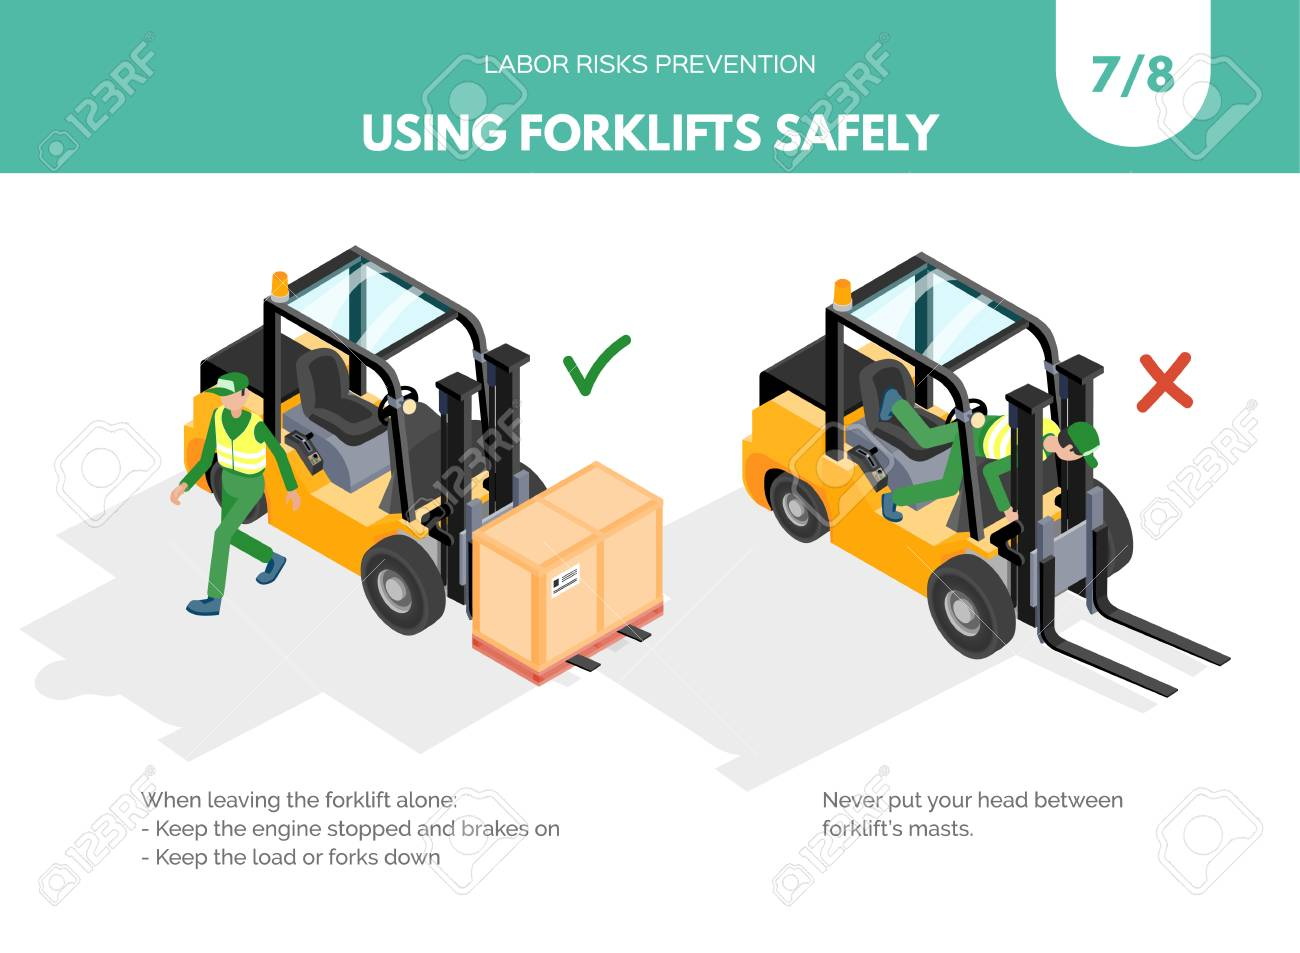 Recomendatios about using forklifts safely. Labor risks prevention concept. Isometric design isolated on white background. Vector illustration. Set 7 of 8 - 110390286